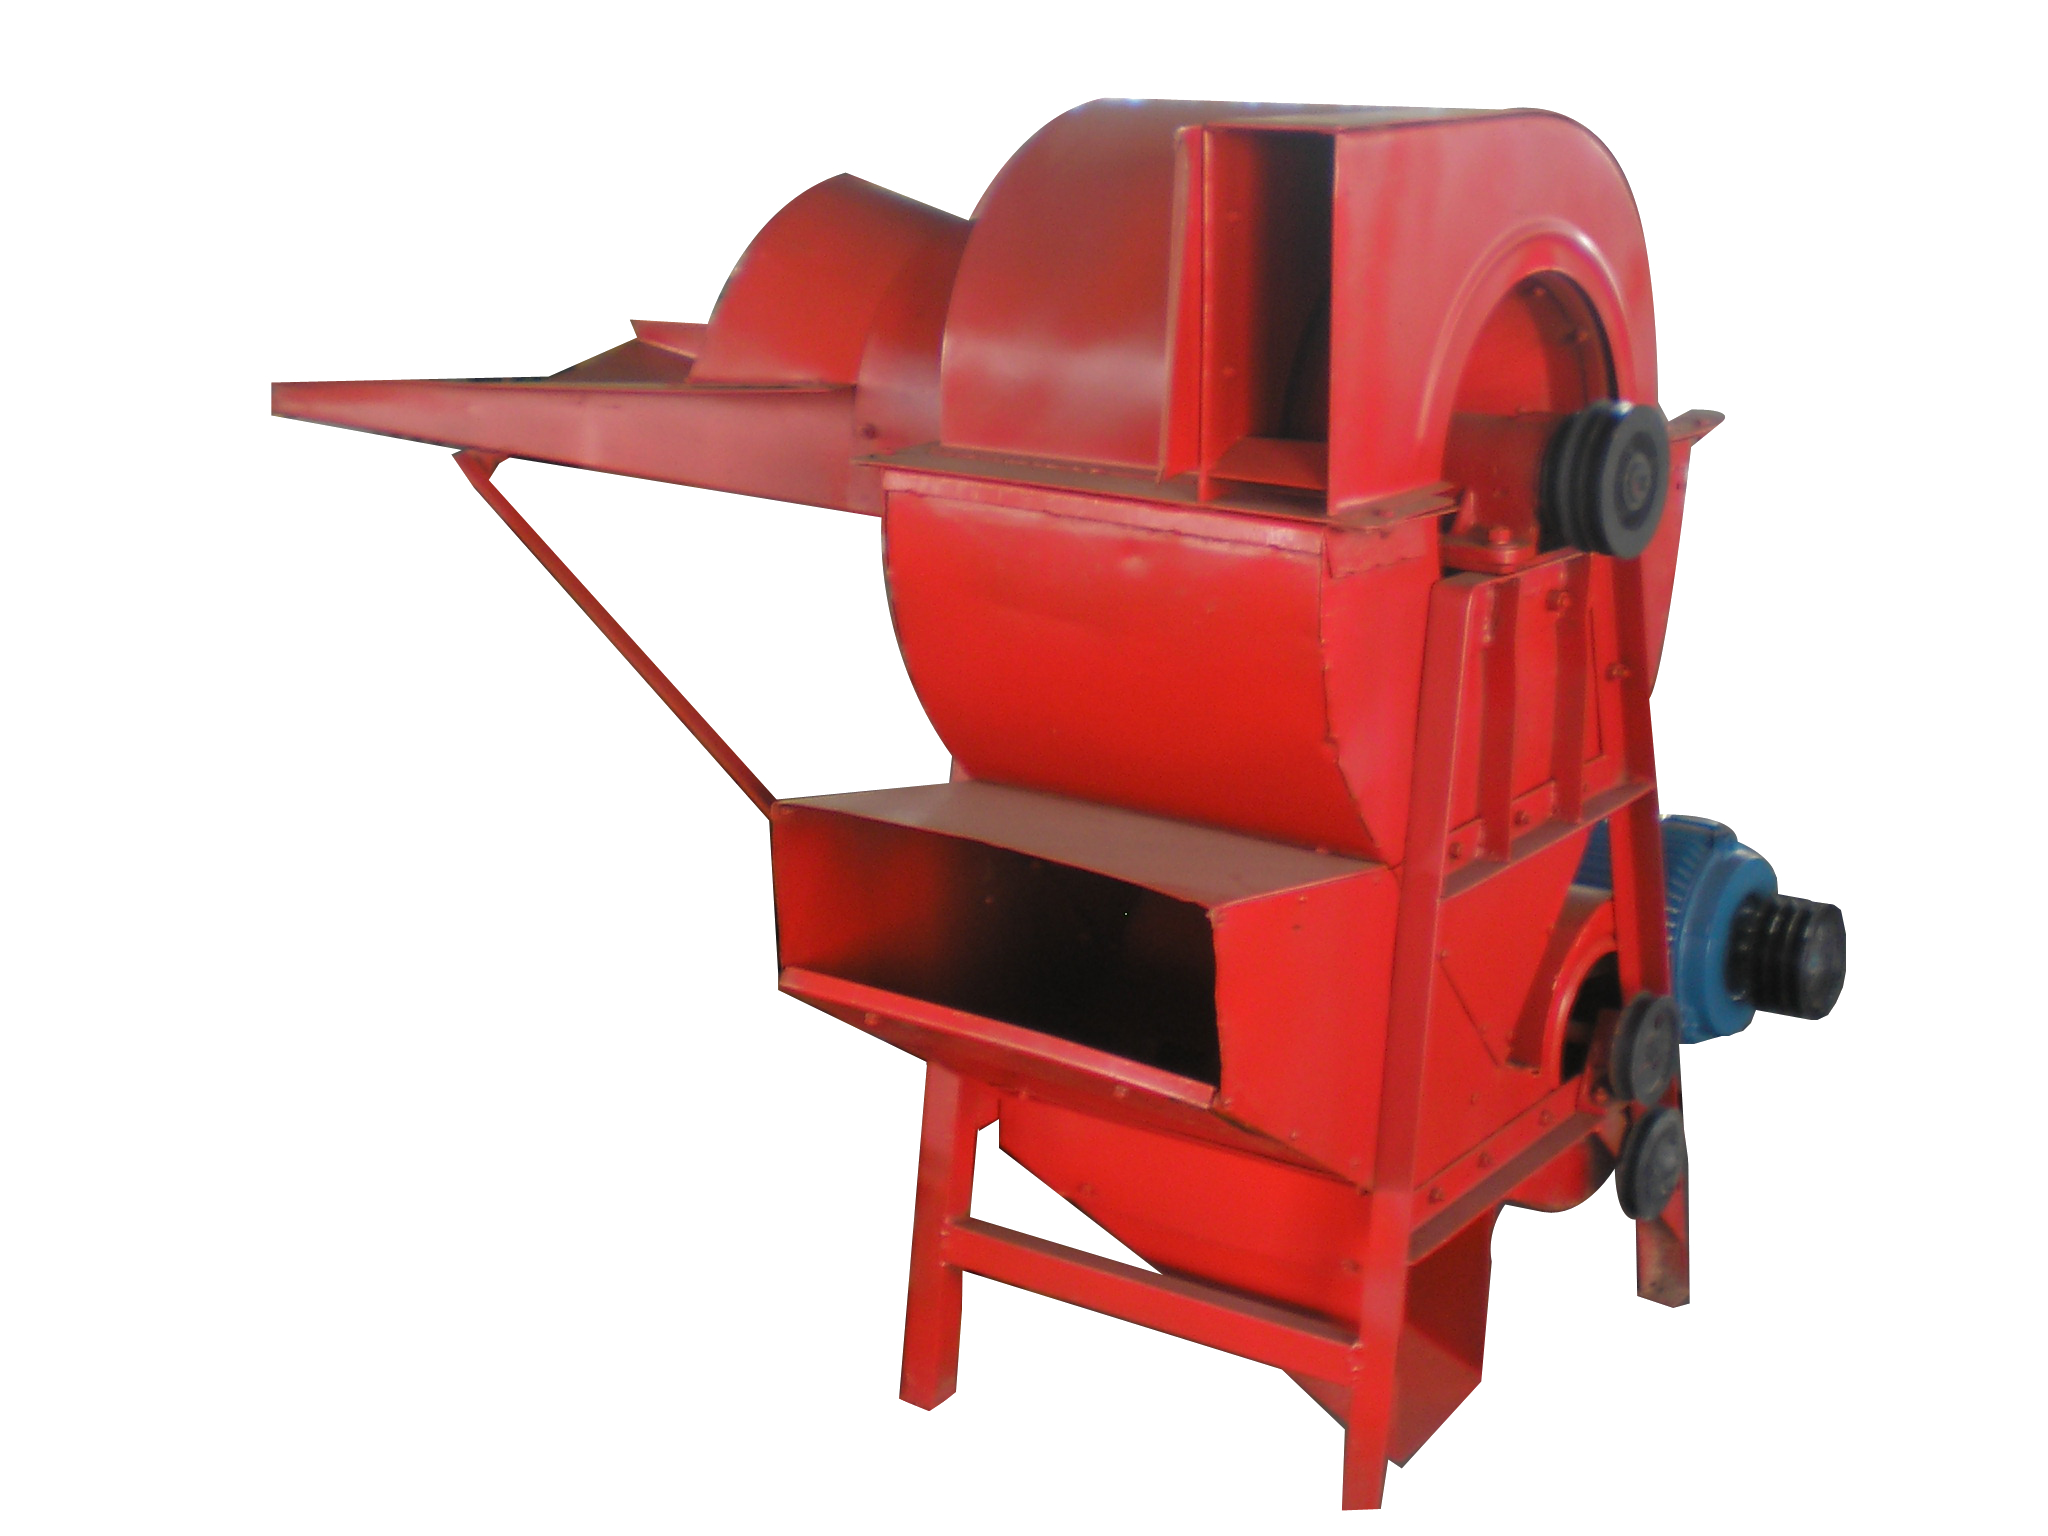 picture royalty free China hot sale high. Machine clipart thresher.